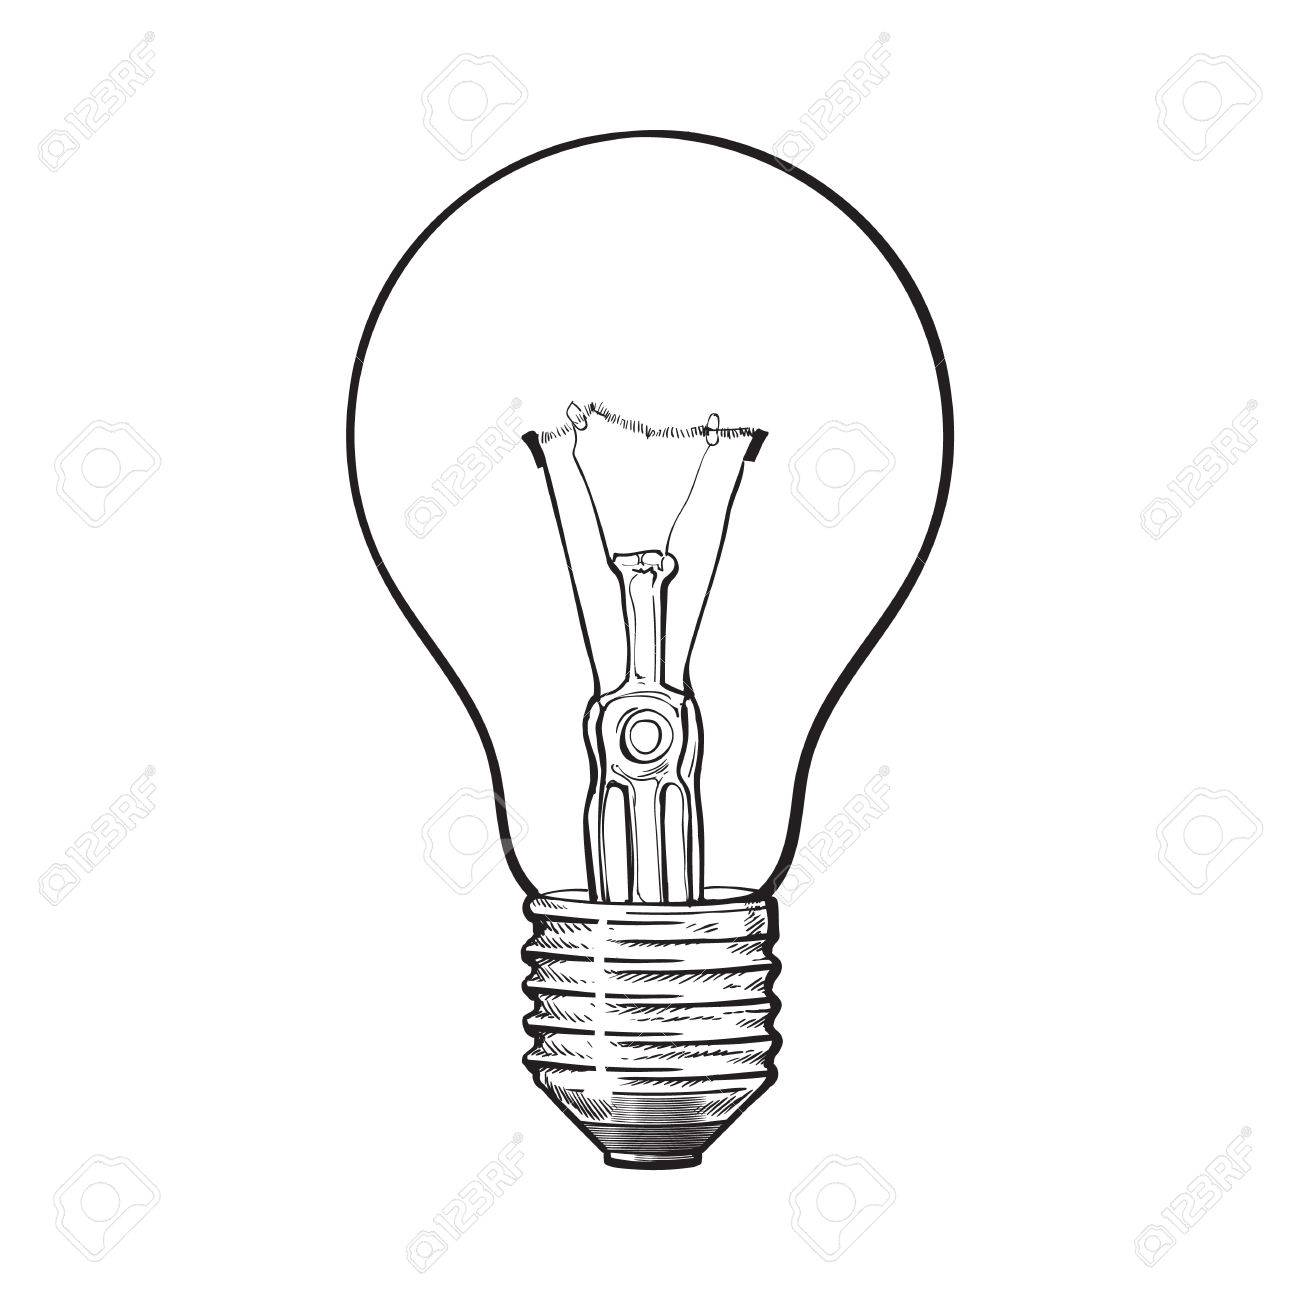 Traditional Transparent Tungsten Light Bulb, Side View, Sketch Style Vector  Illustration Isolated On White